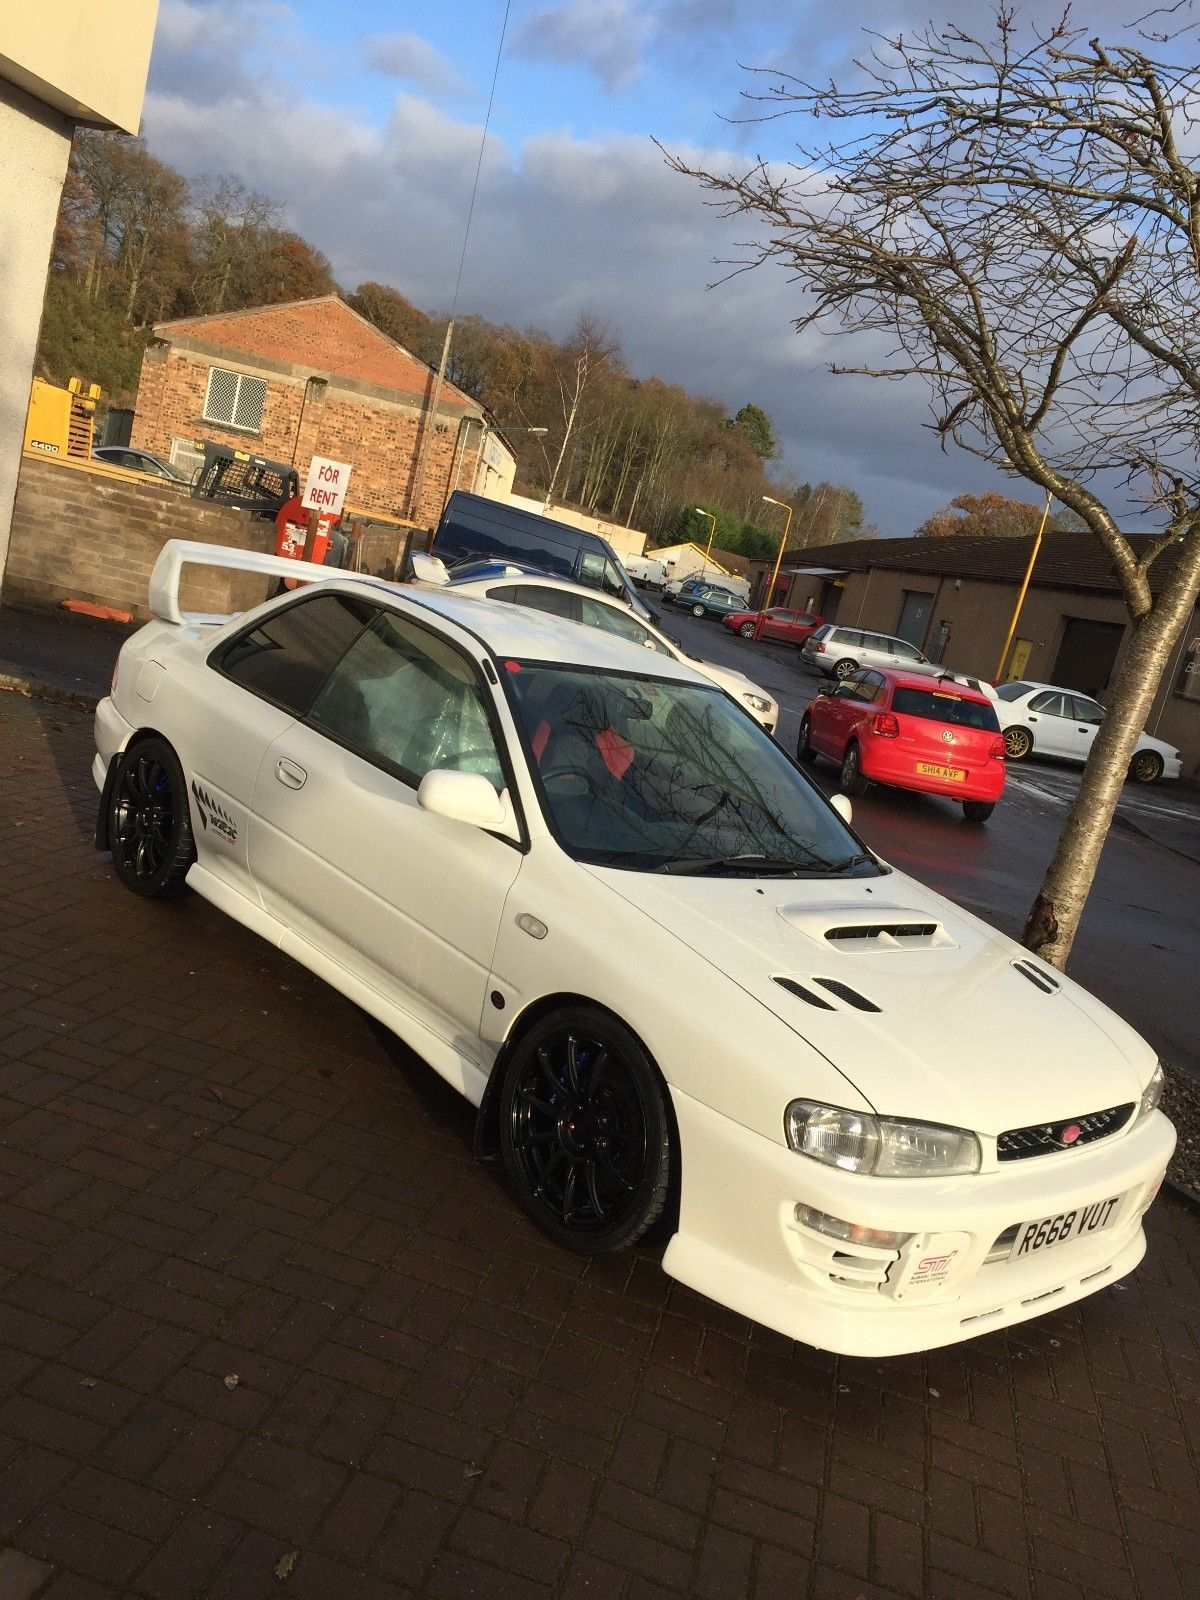 Check Out This Classic Turbo Subaru Impreza Wrx Sti Type R Ra 2door Amazing Car 20k Upgrades Fast Road Track Subaru Impreza Subaru Wrx